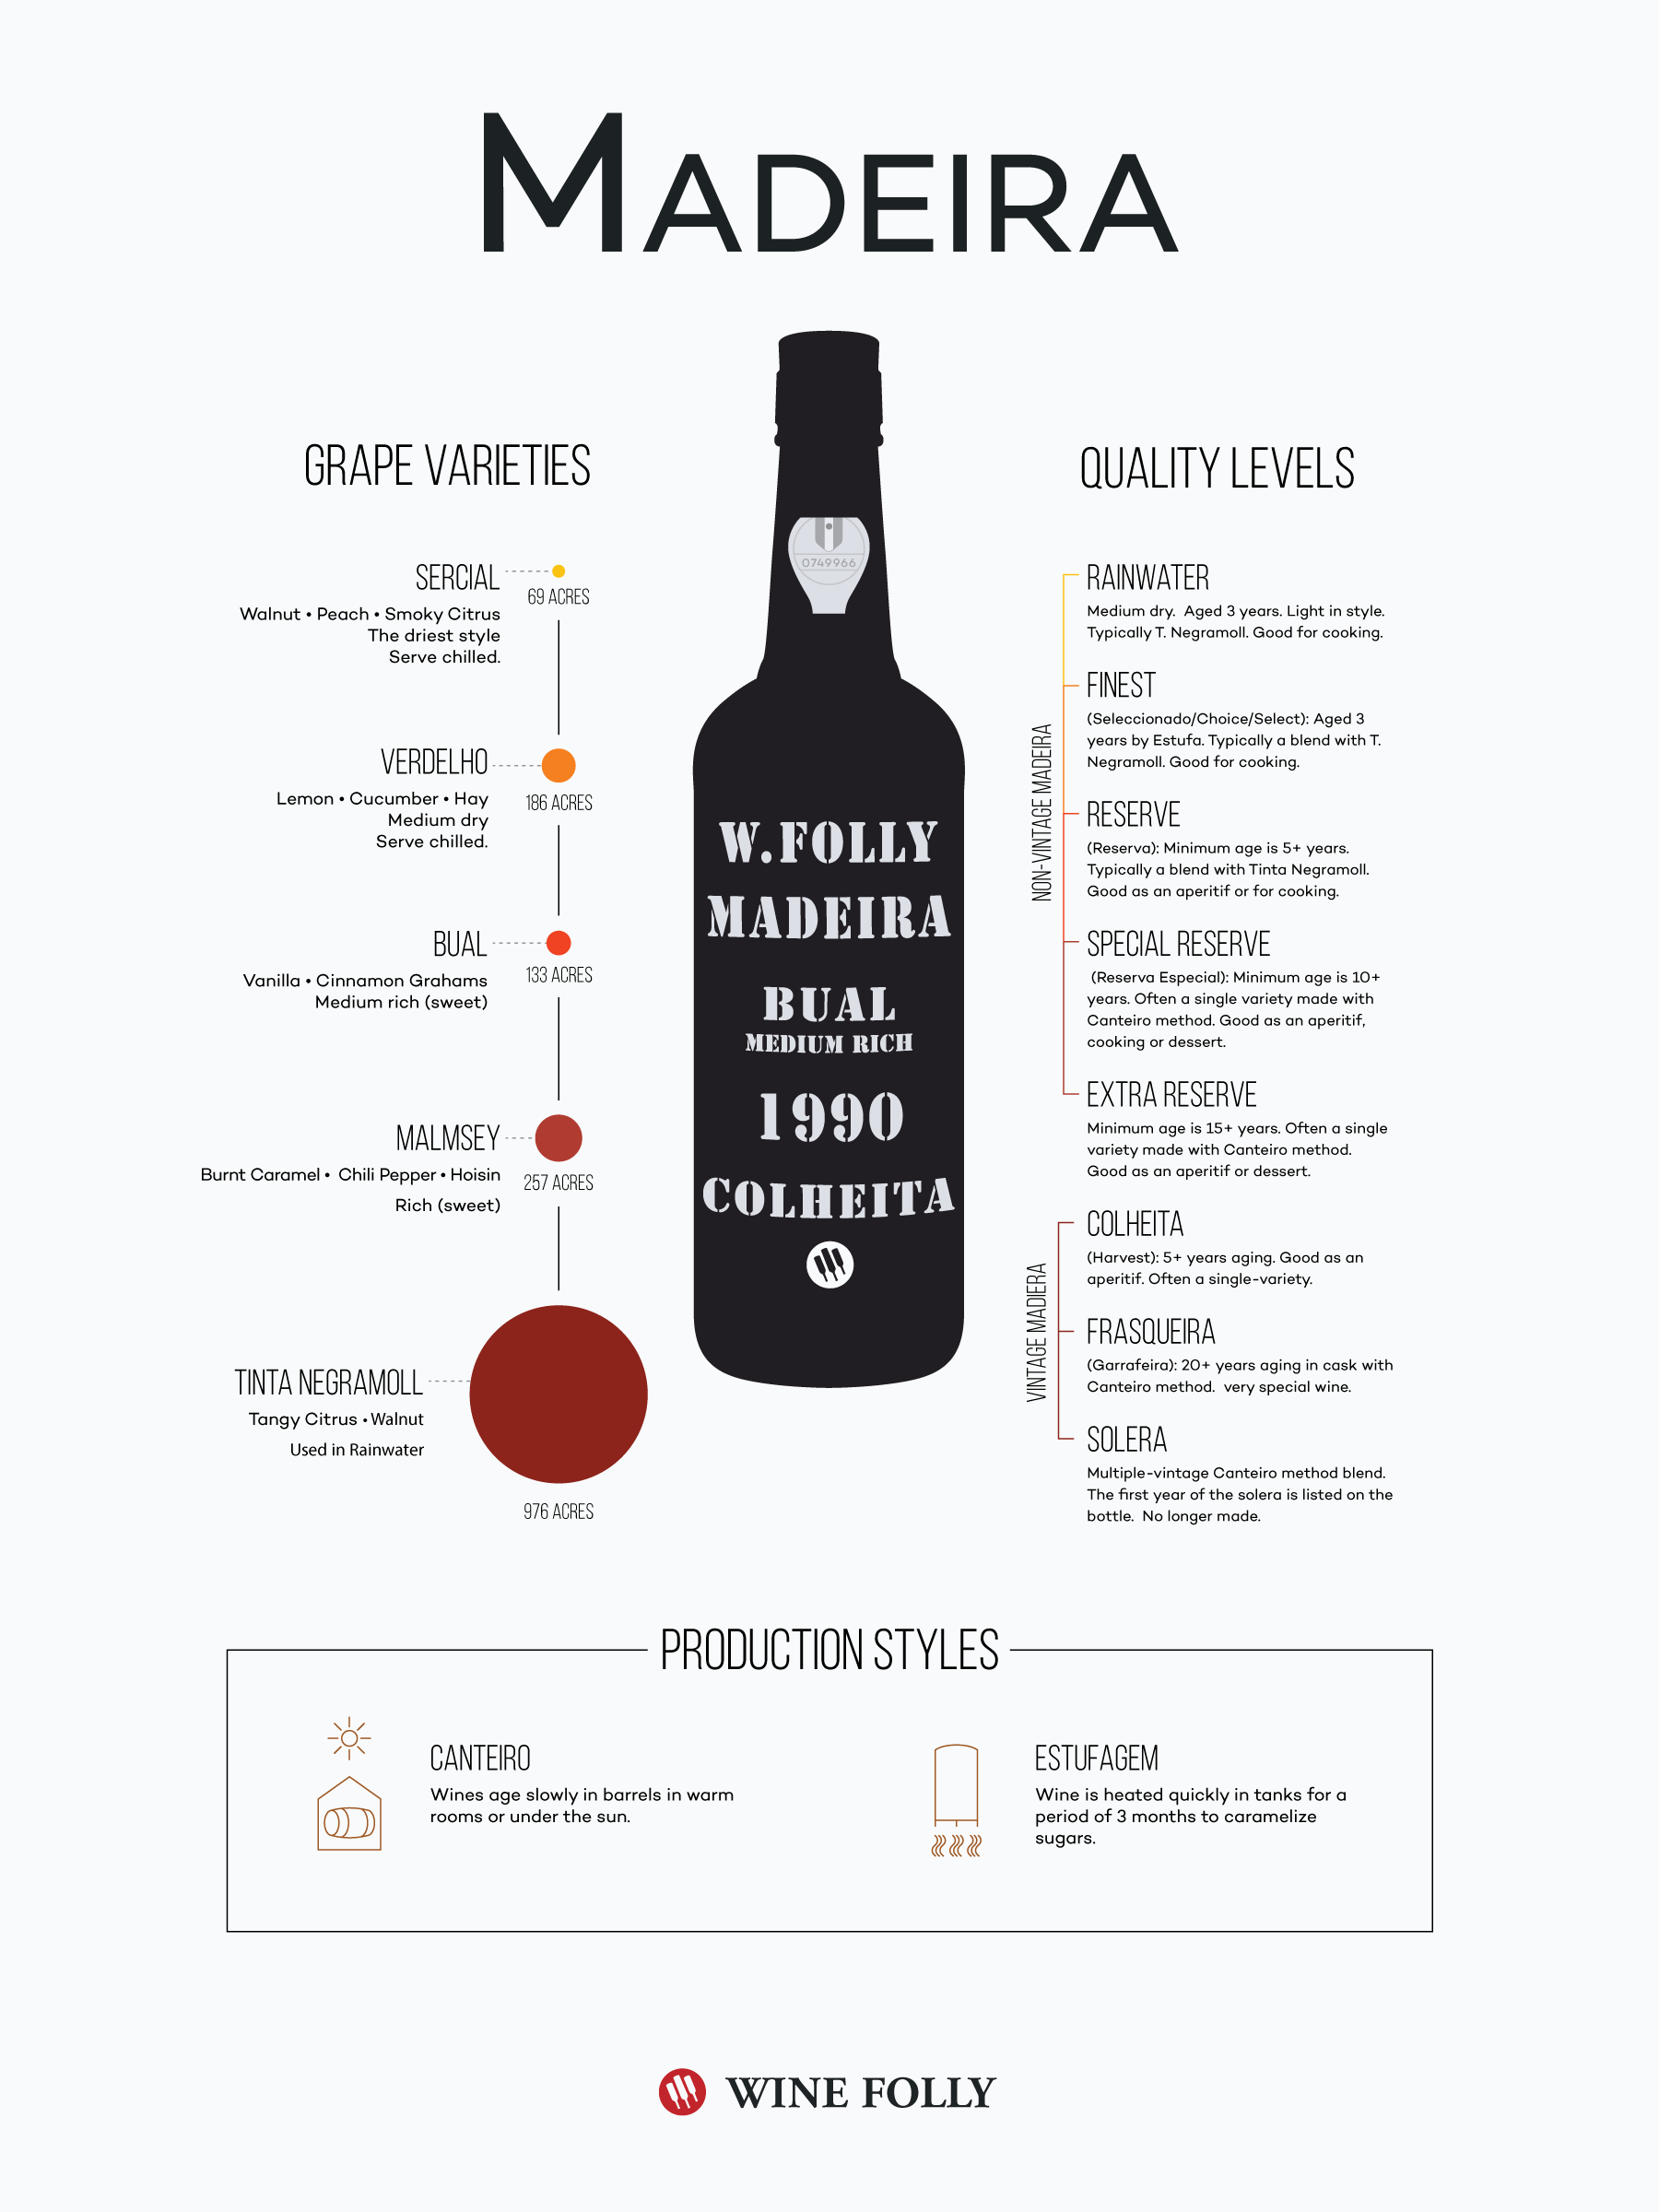 The different types of Madeira wine